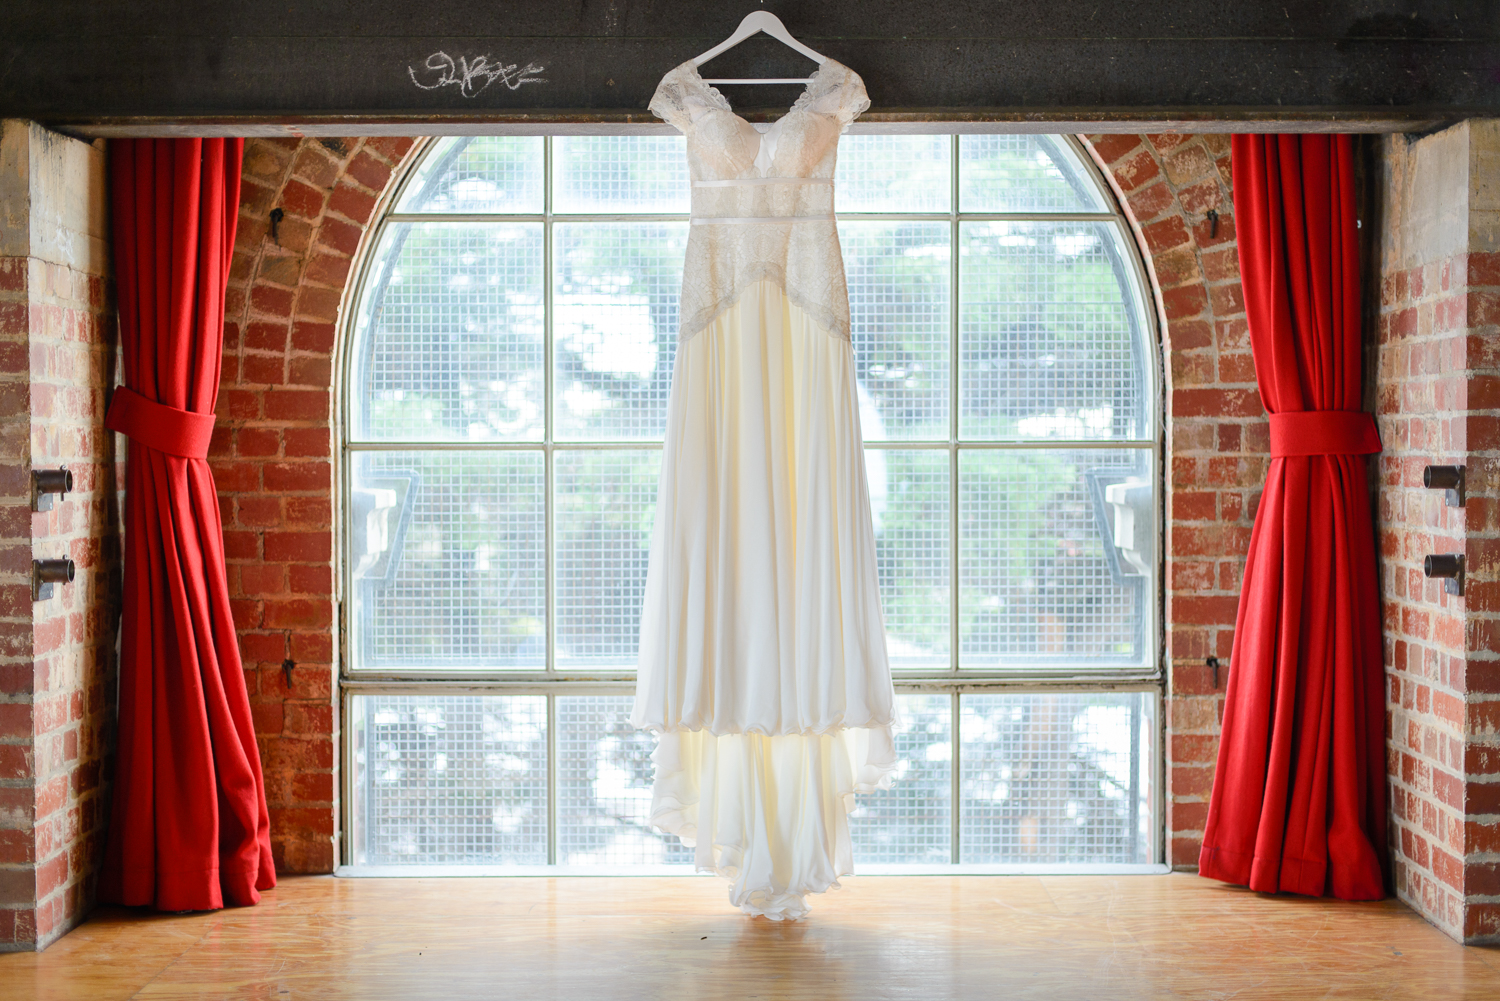 Melbourne-wedding-at-the-sub-station-an-old-power-station-Rhapsody-Road-Photography-Emma-Lambe-3.jpg